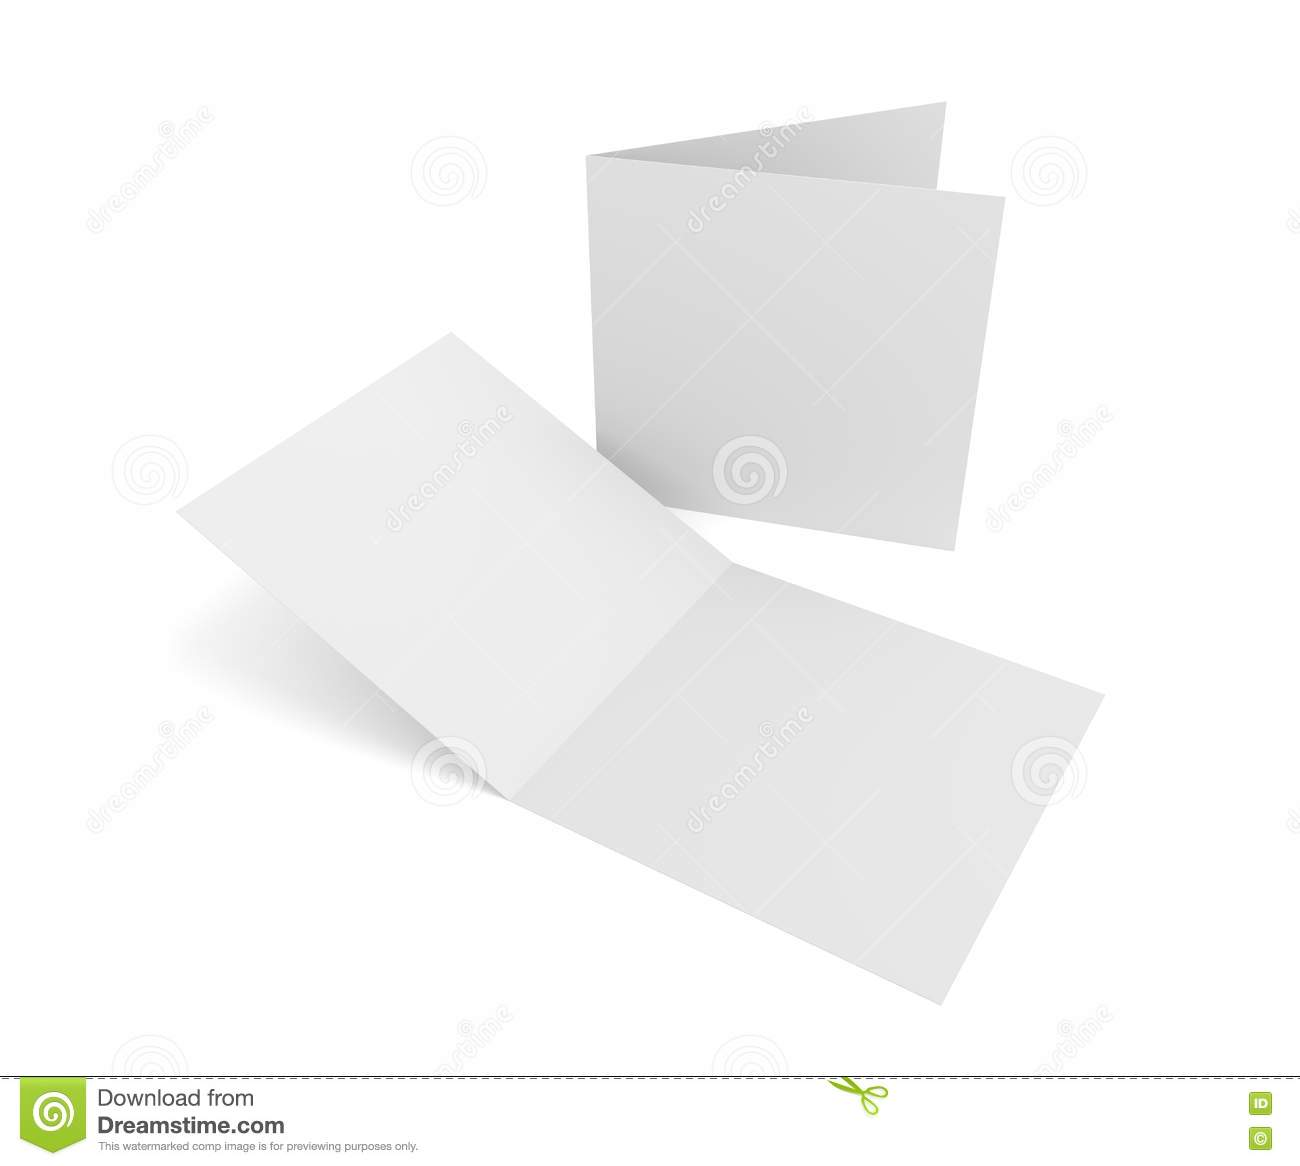 Isolated blank 3d rendering open square greeting cards on white royalty free stock photo kristyandbryce Images